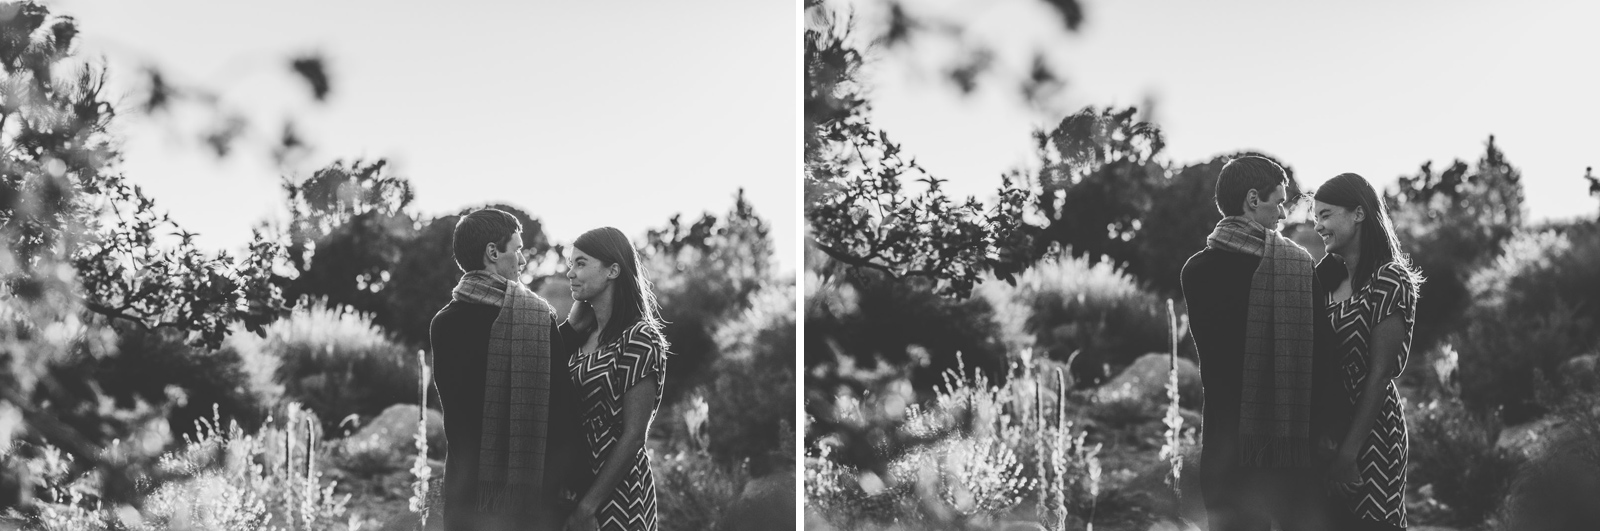 068-engagement-photographers-in-nm-farmington-and-albuquerque